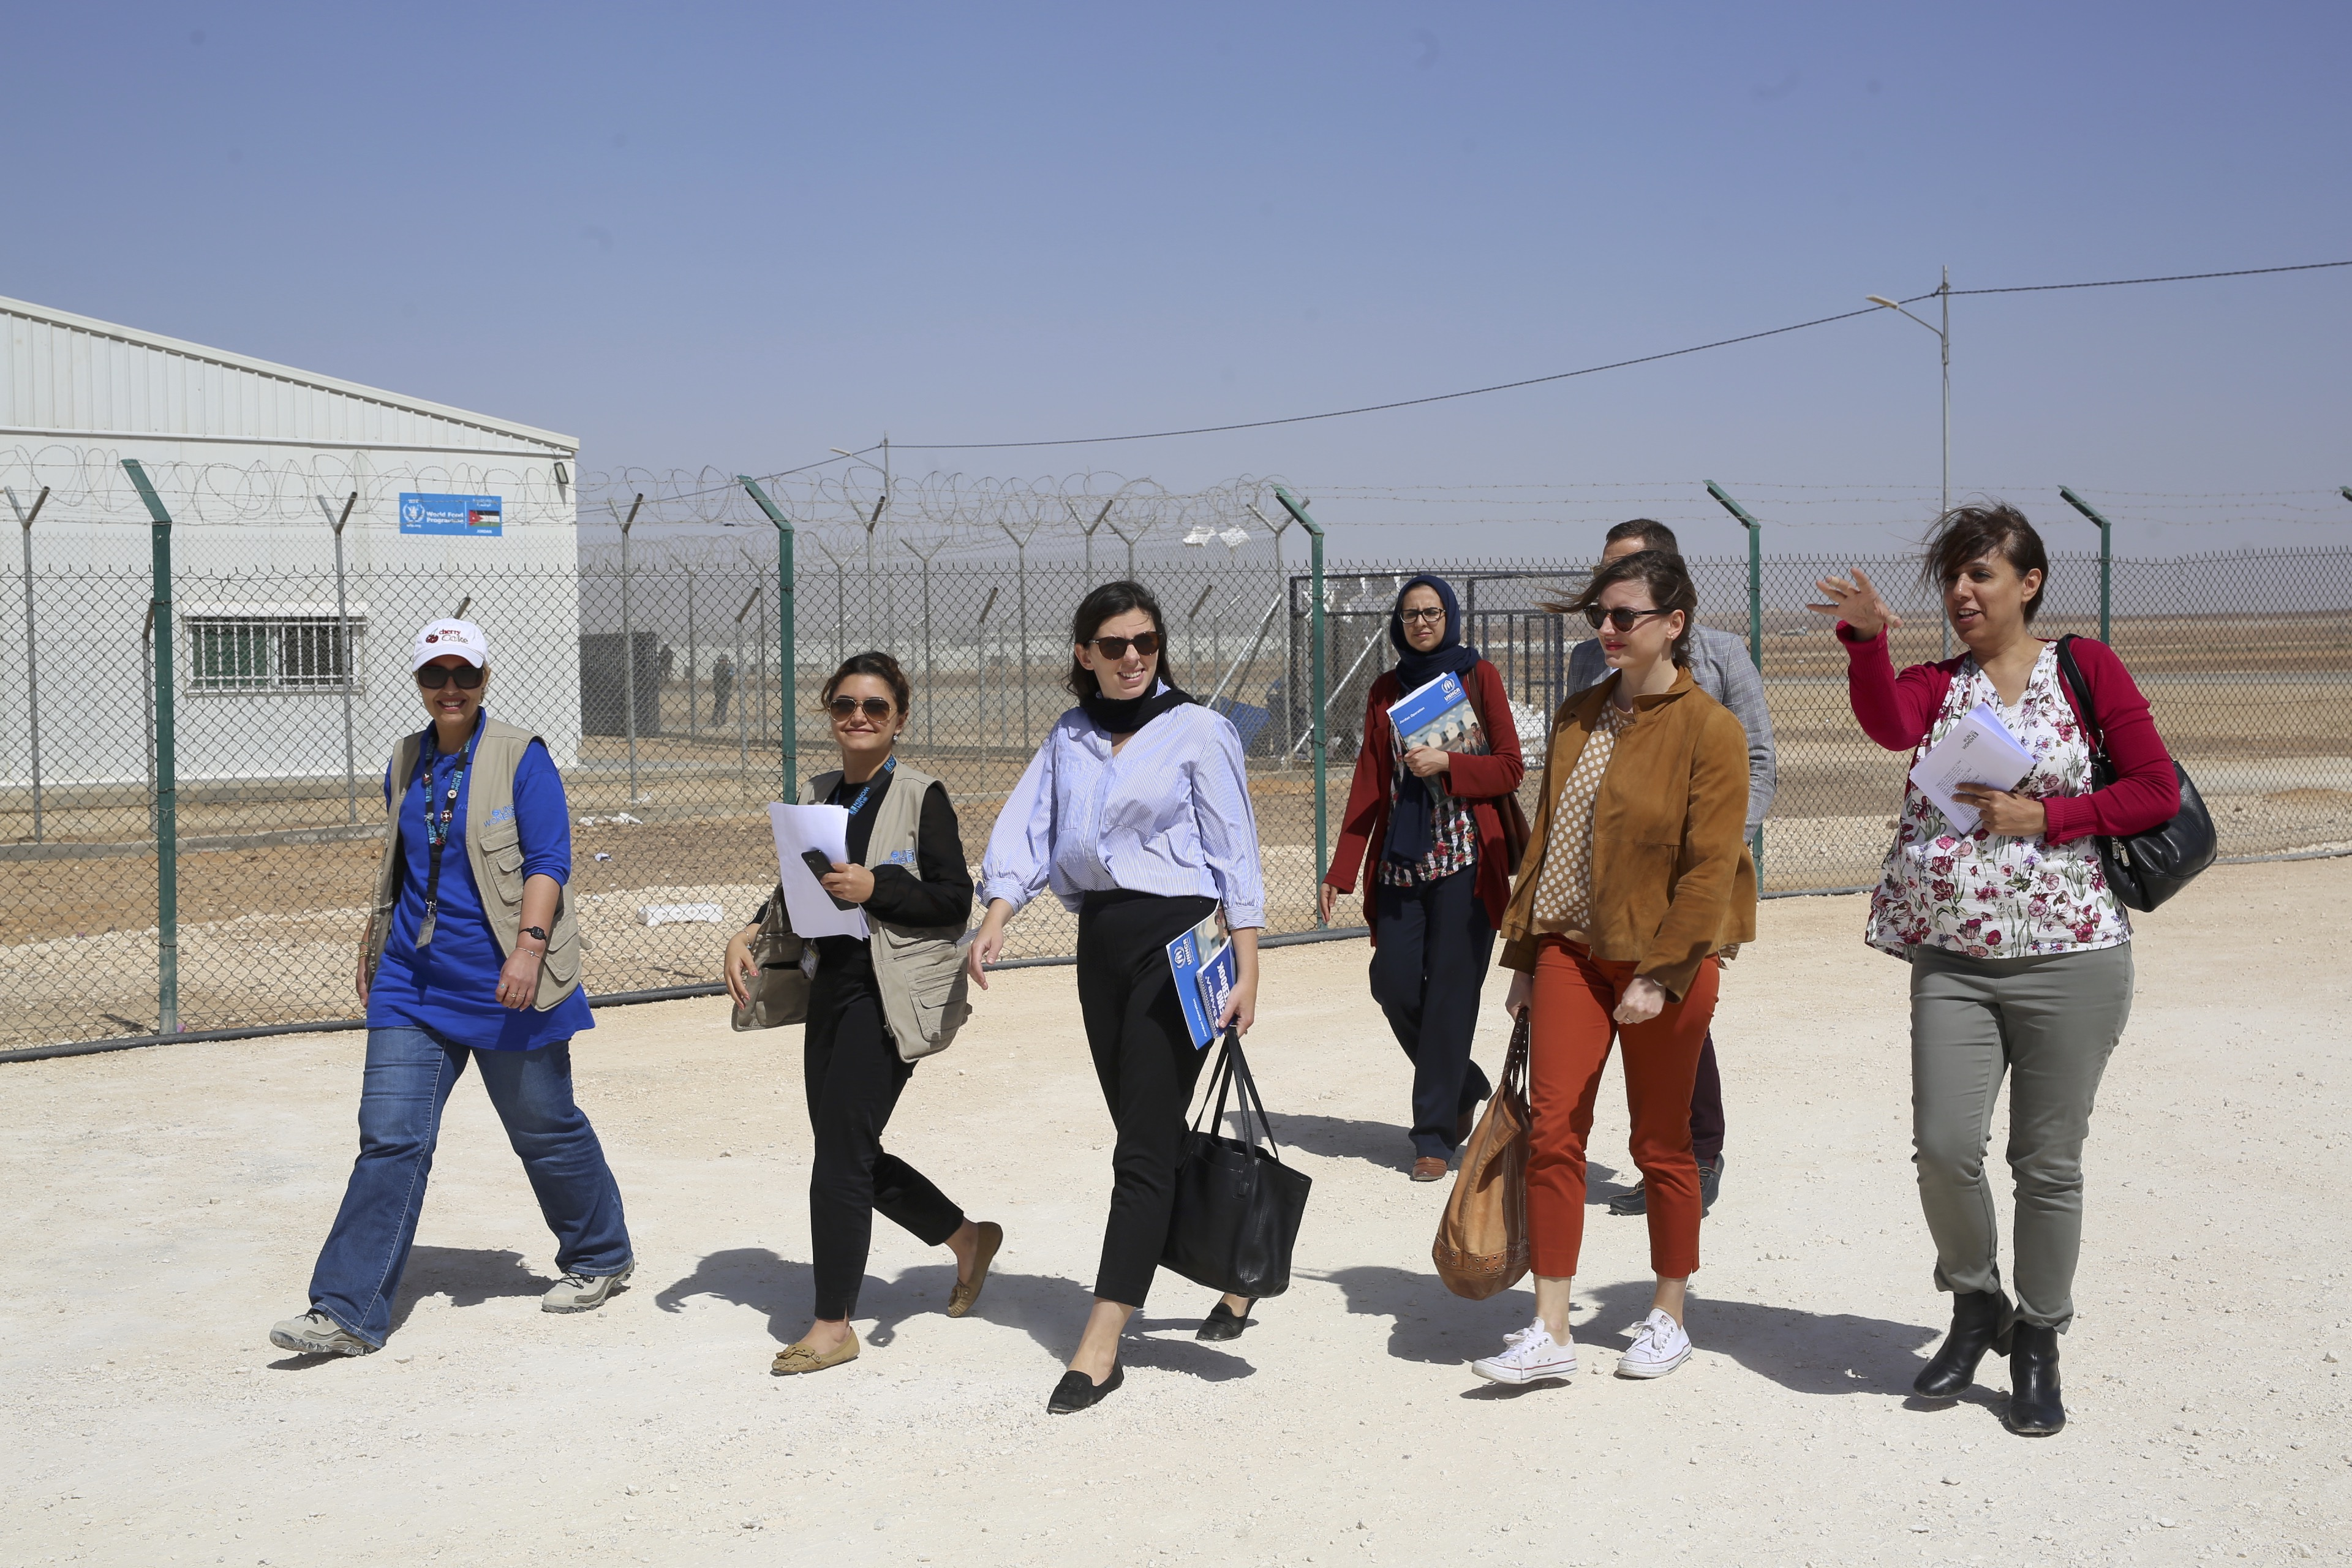 The delegation joins UN Women at the Azraq 'Women and Girls' Oasis' in village 3, the Oasis was inaugurated in February 2018 alongside the French Ambassador of Jordan and fellow members who joined the delegation visit to the Oasis.